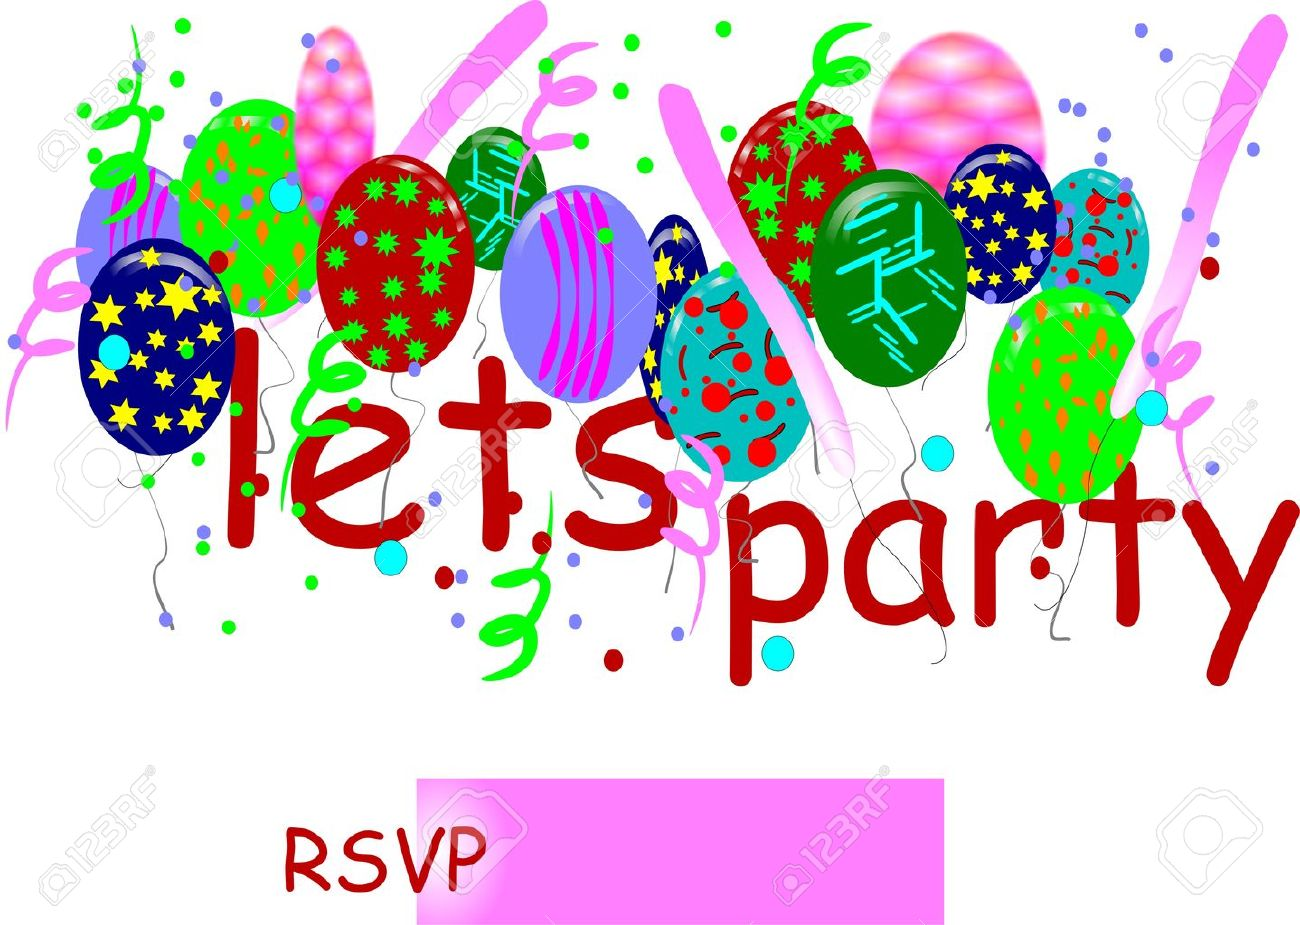 lets party rsvp invitation on white card royalty cliparts vector lets party rsvp invitation on white card